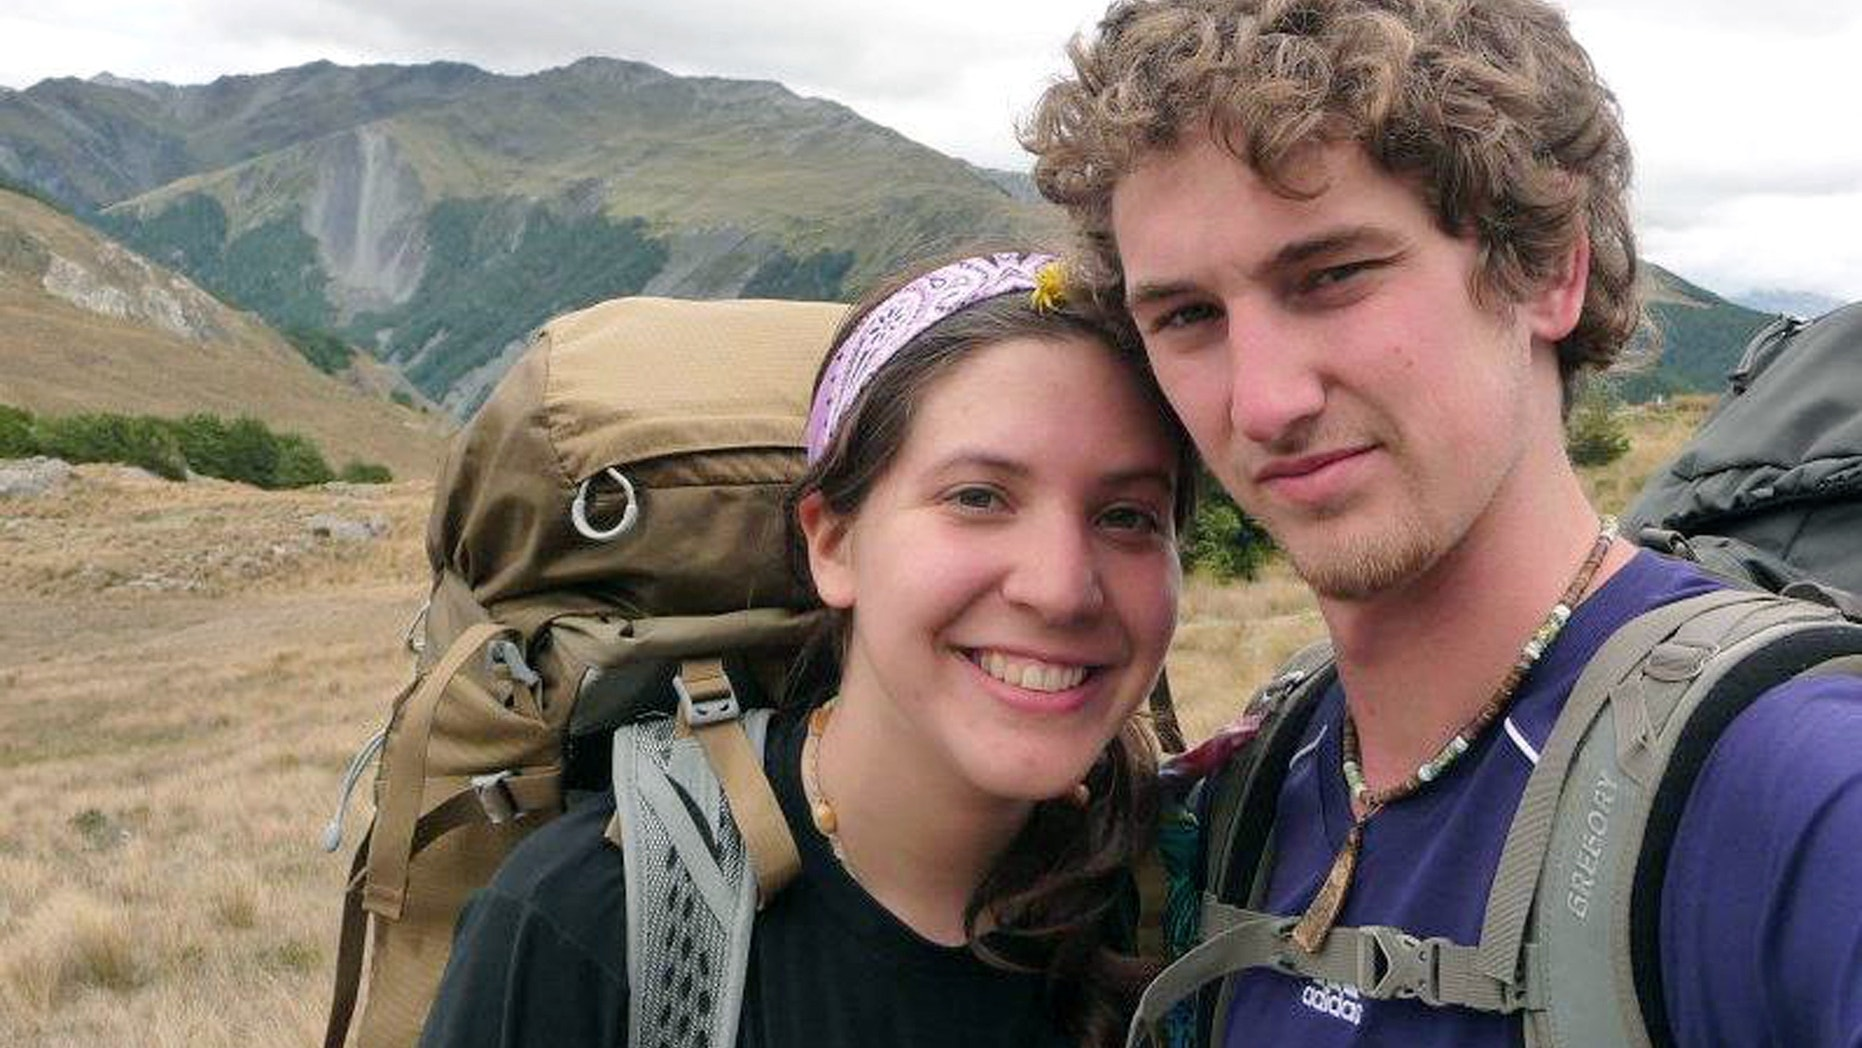 FILE: Alec Brown and his girlfriend Erica Klintworth pose near mountains at an unknown location.